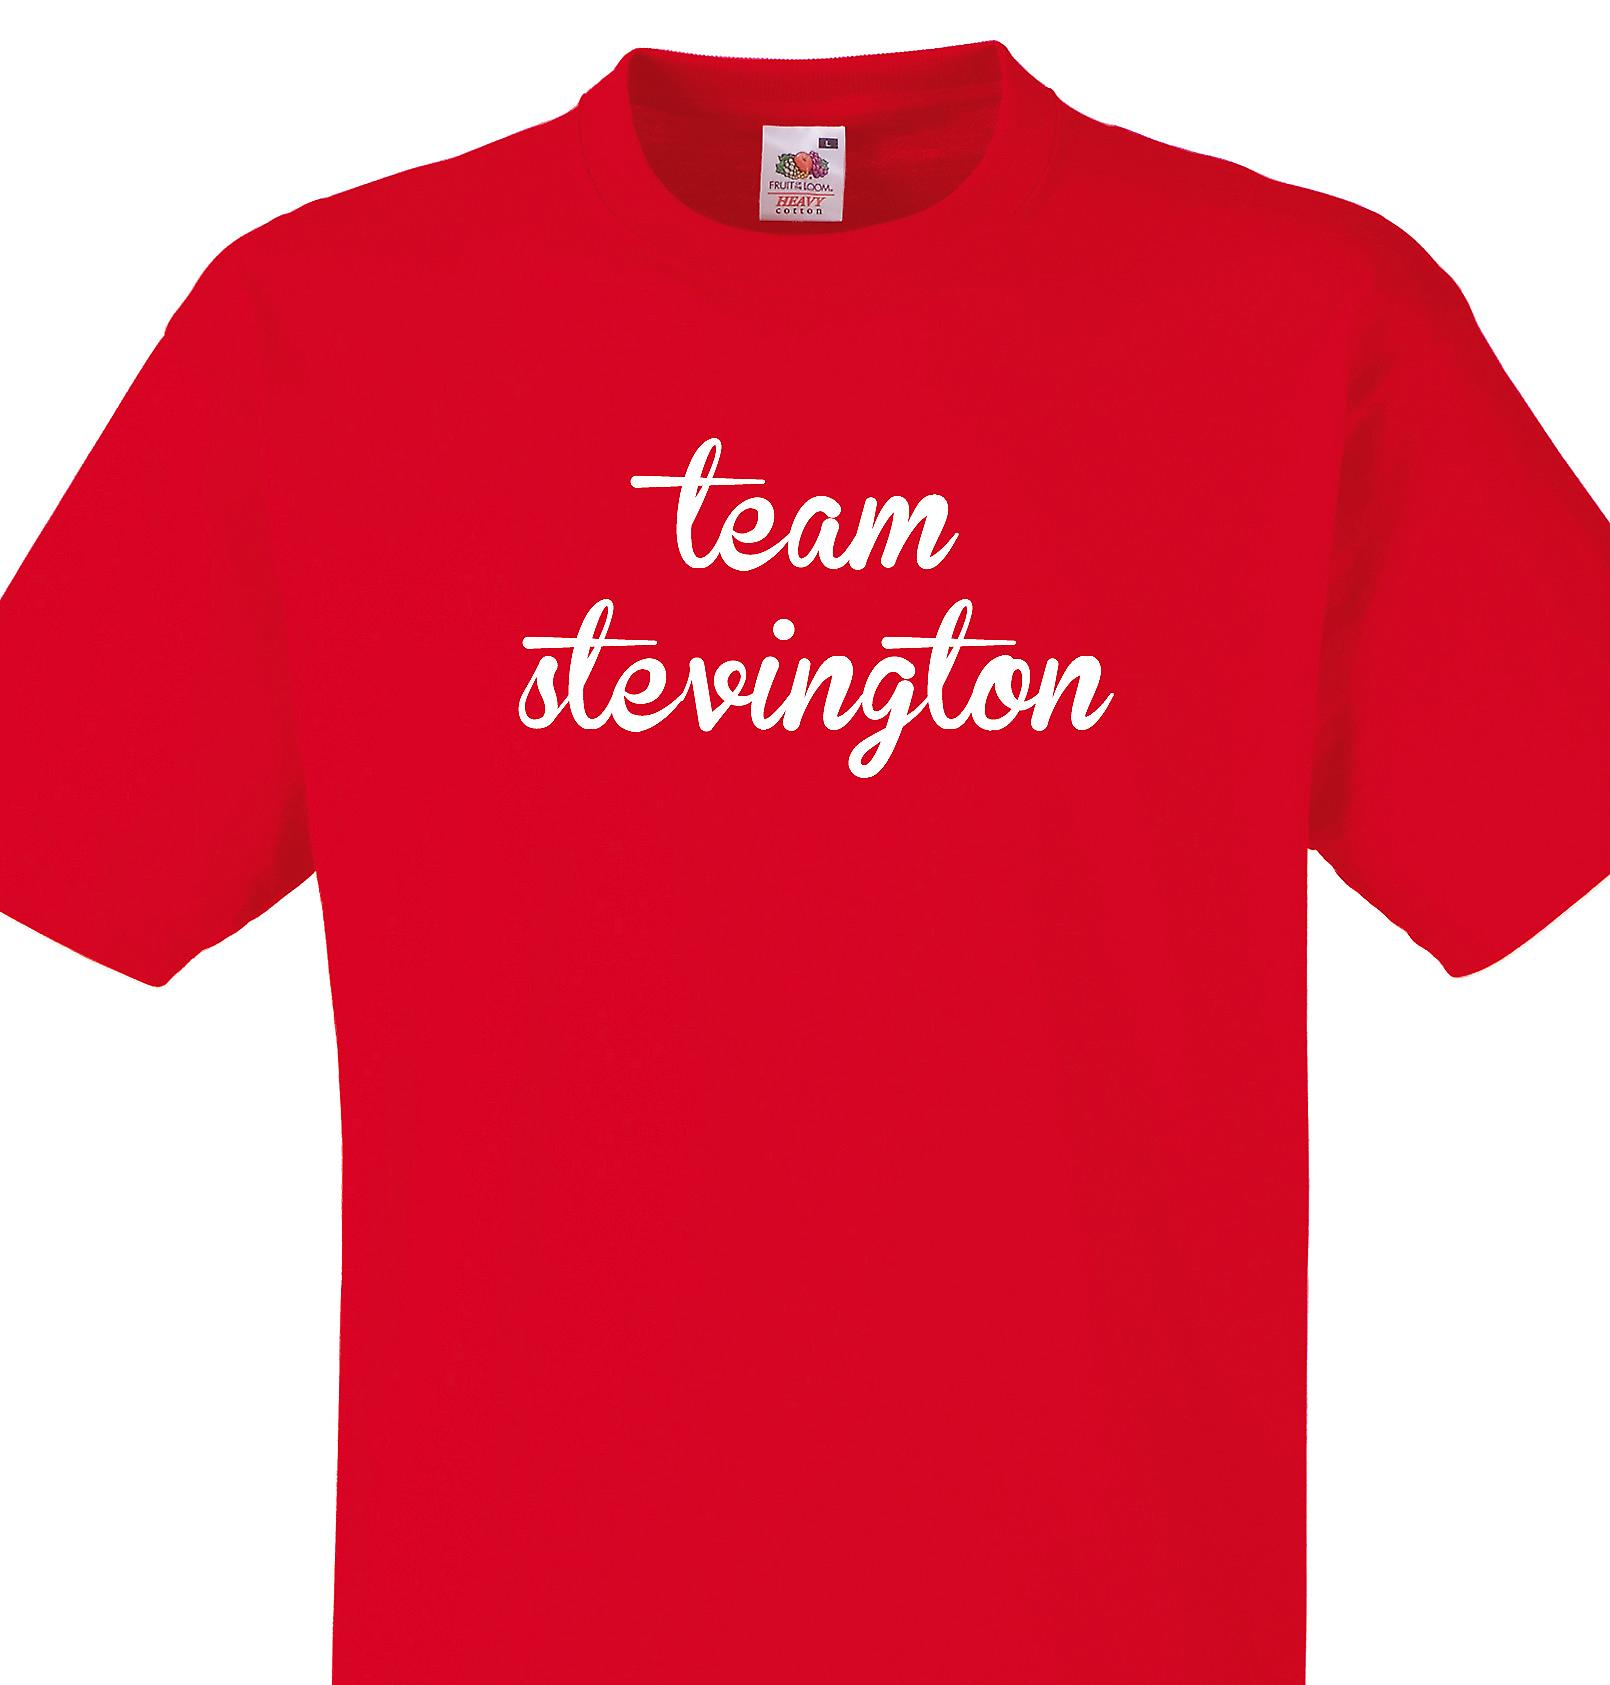 Team Stevington Red T shirt